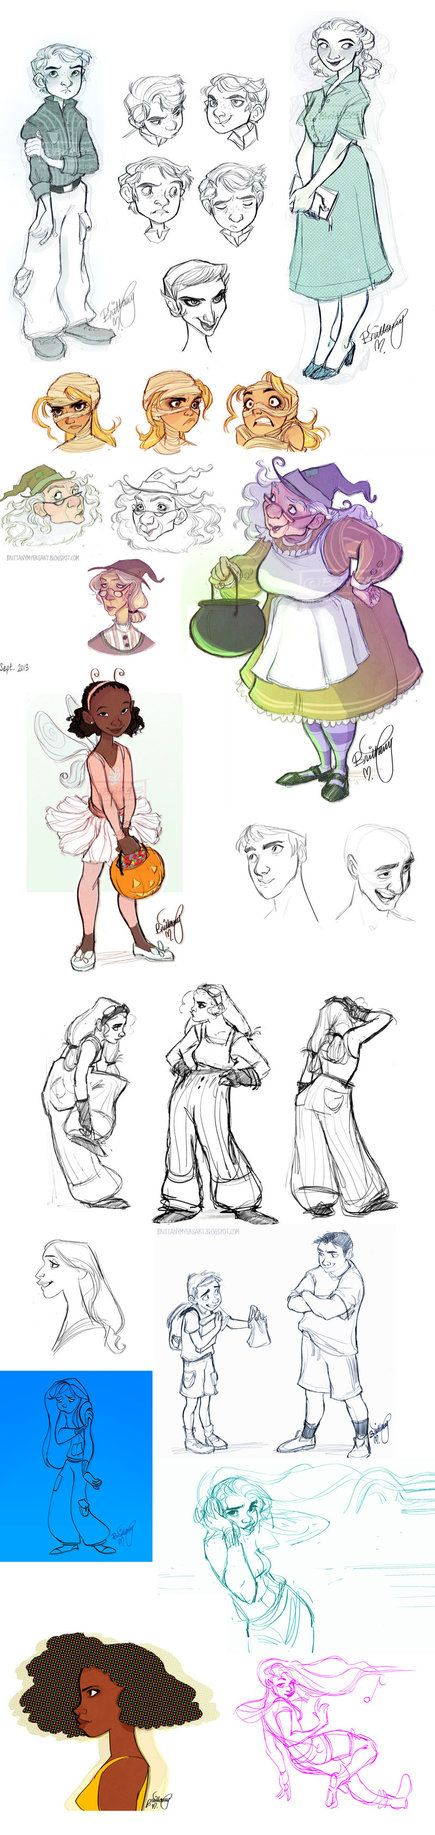 ✧ #characterconcepts ✧ Oodles of Doodles 7 by Britt315